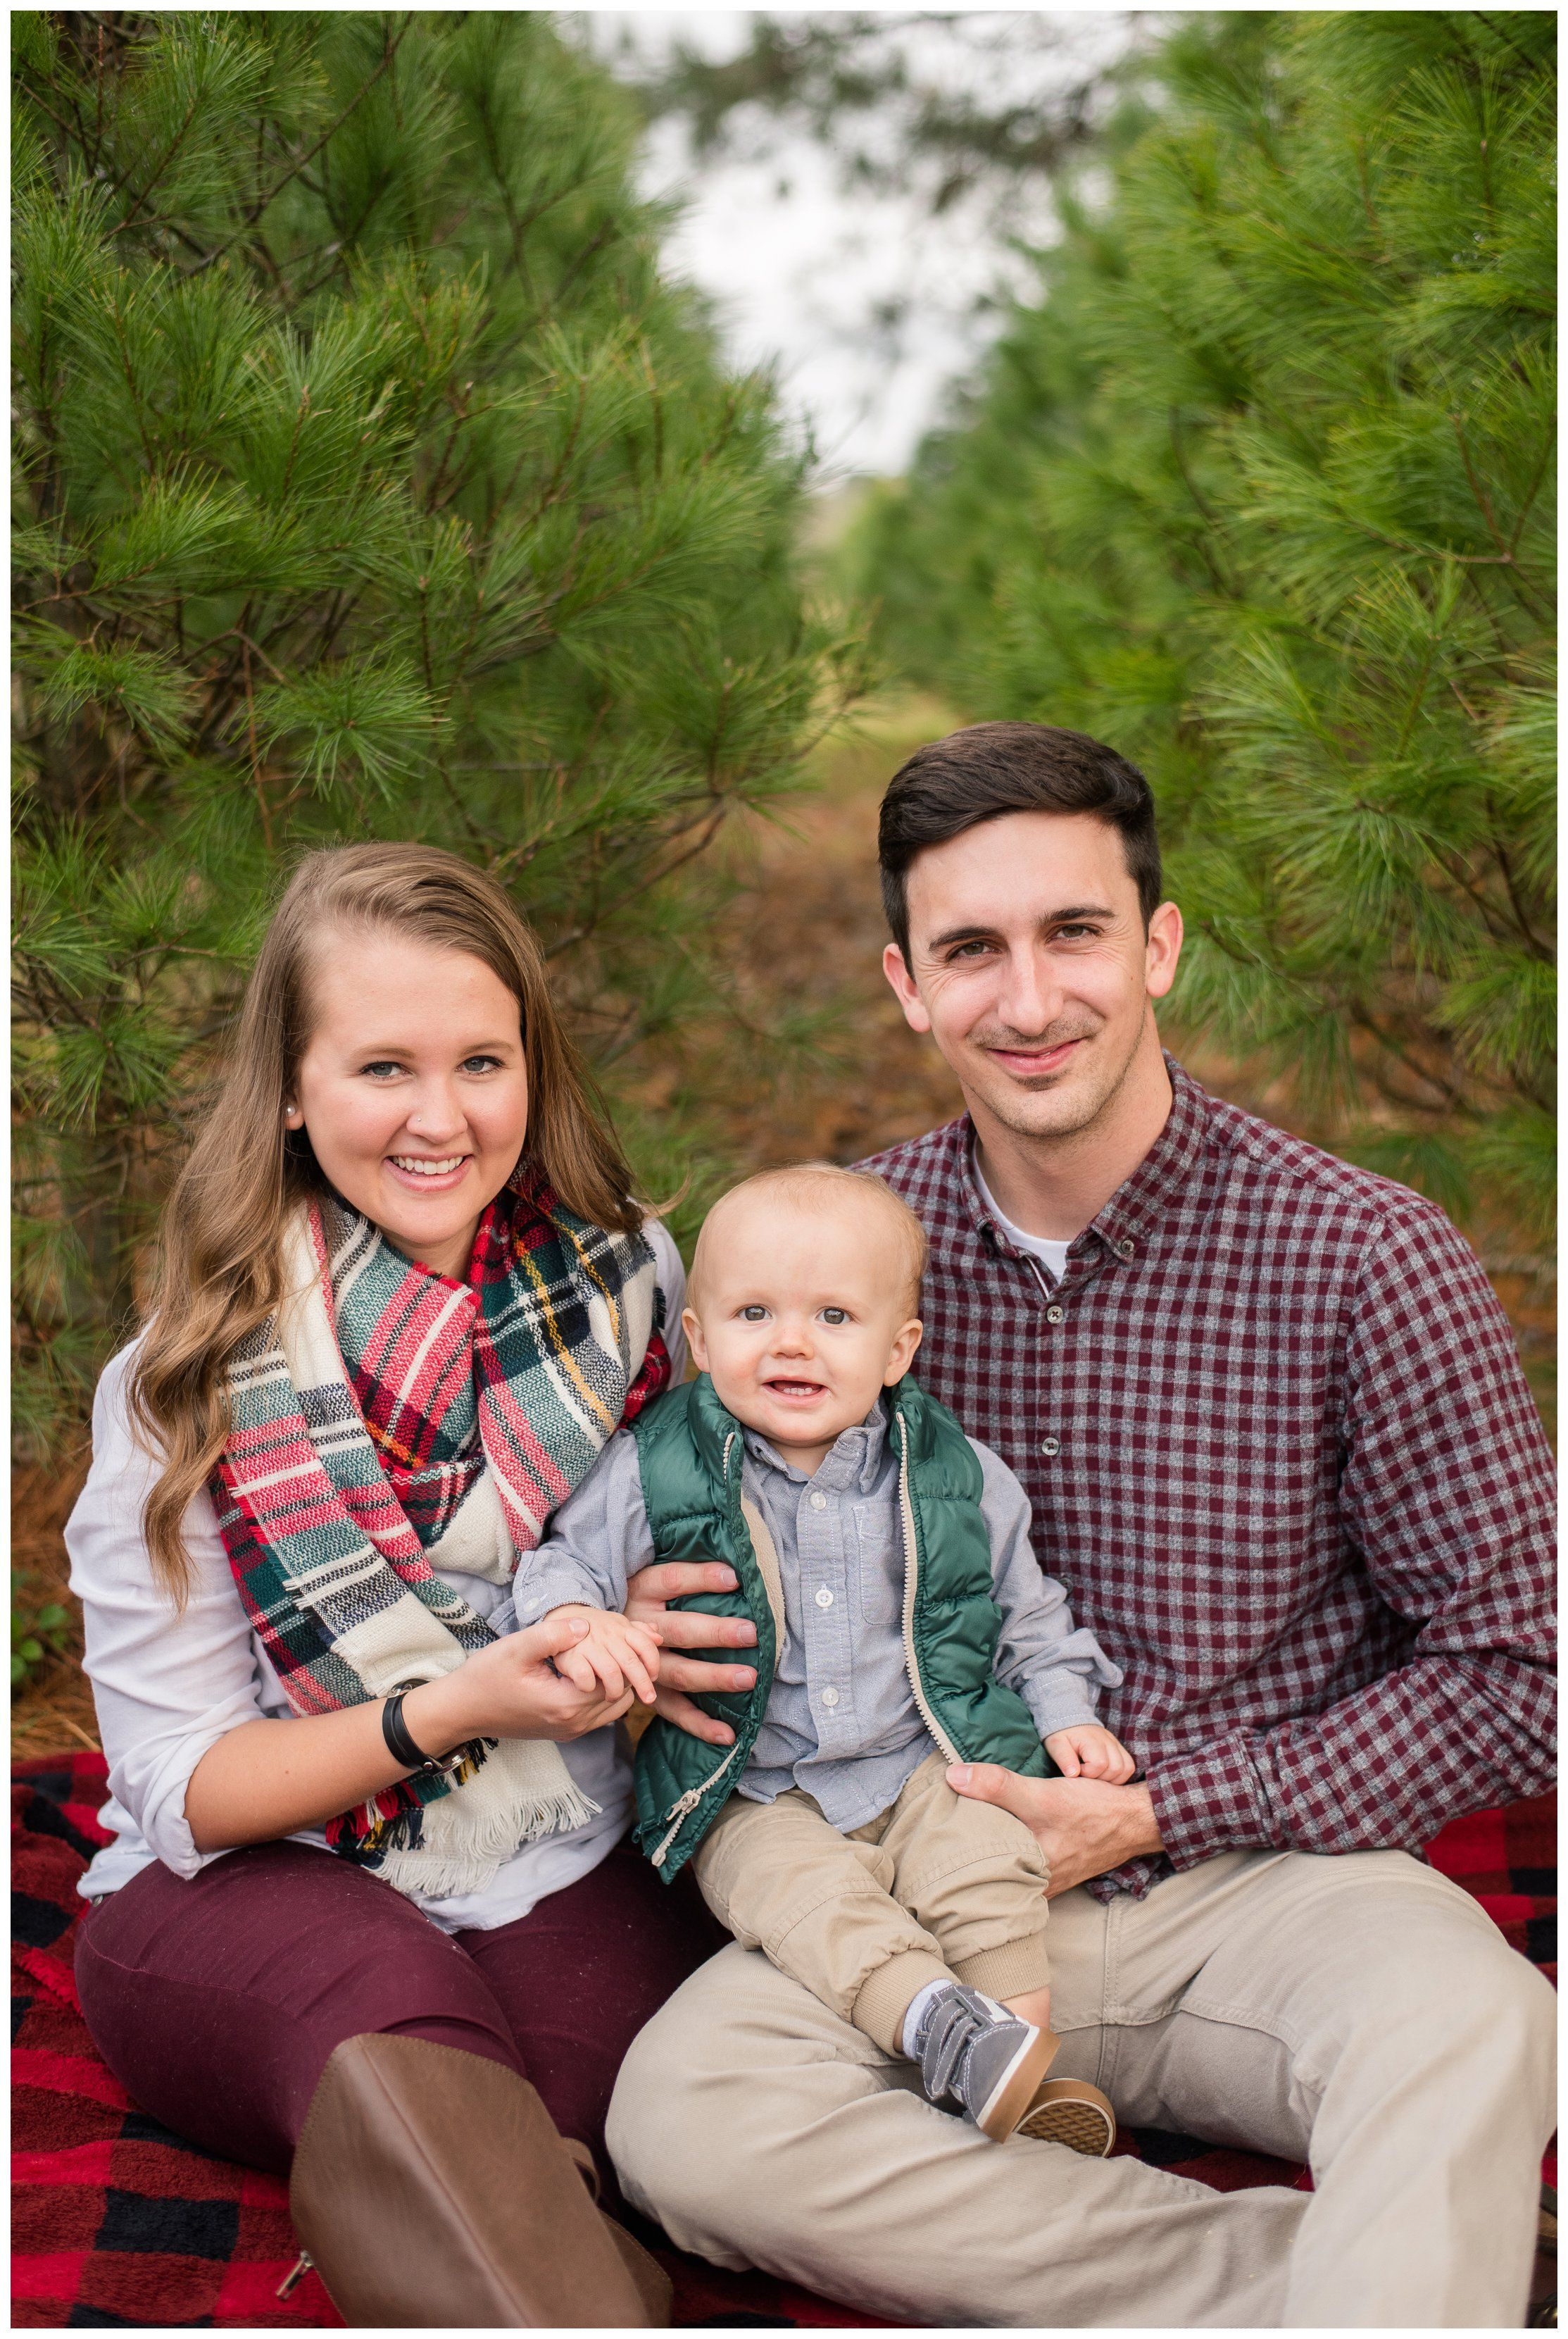 Christmas Tree Farm Mini Sessions Christmas Outfit Inspiration What To Wear Christmas Tree Farm Photos Christmas Tree Farm Pictures Tree Farm Mini Session